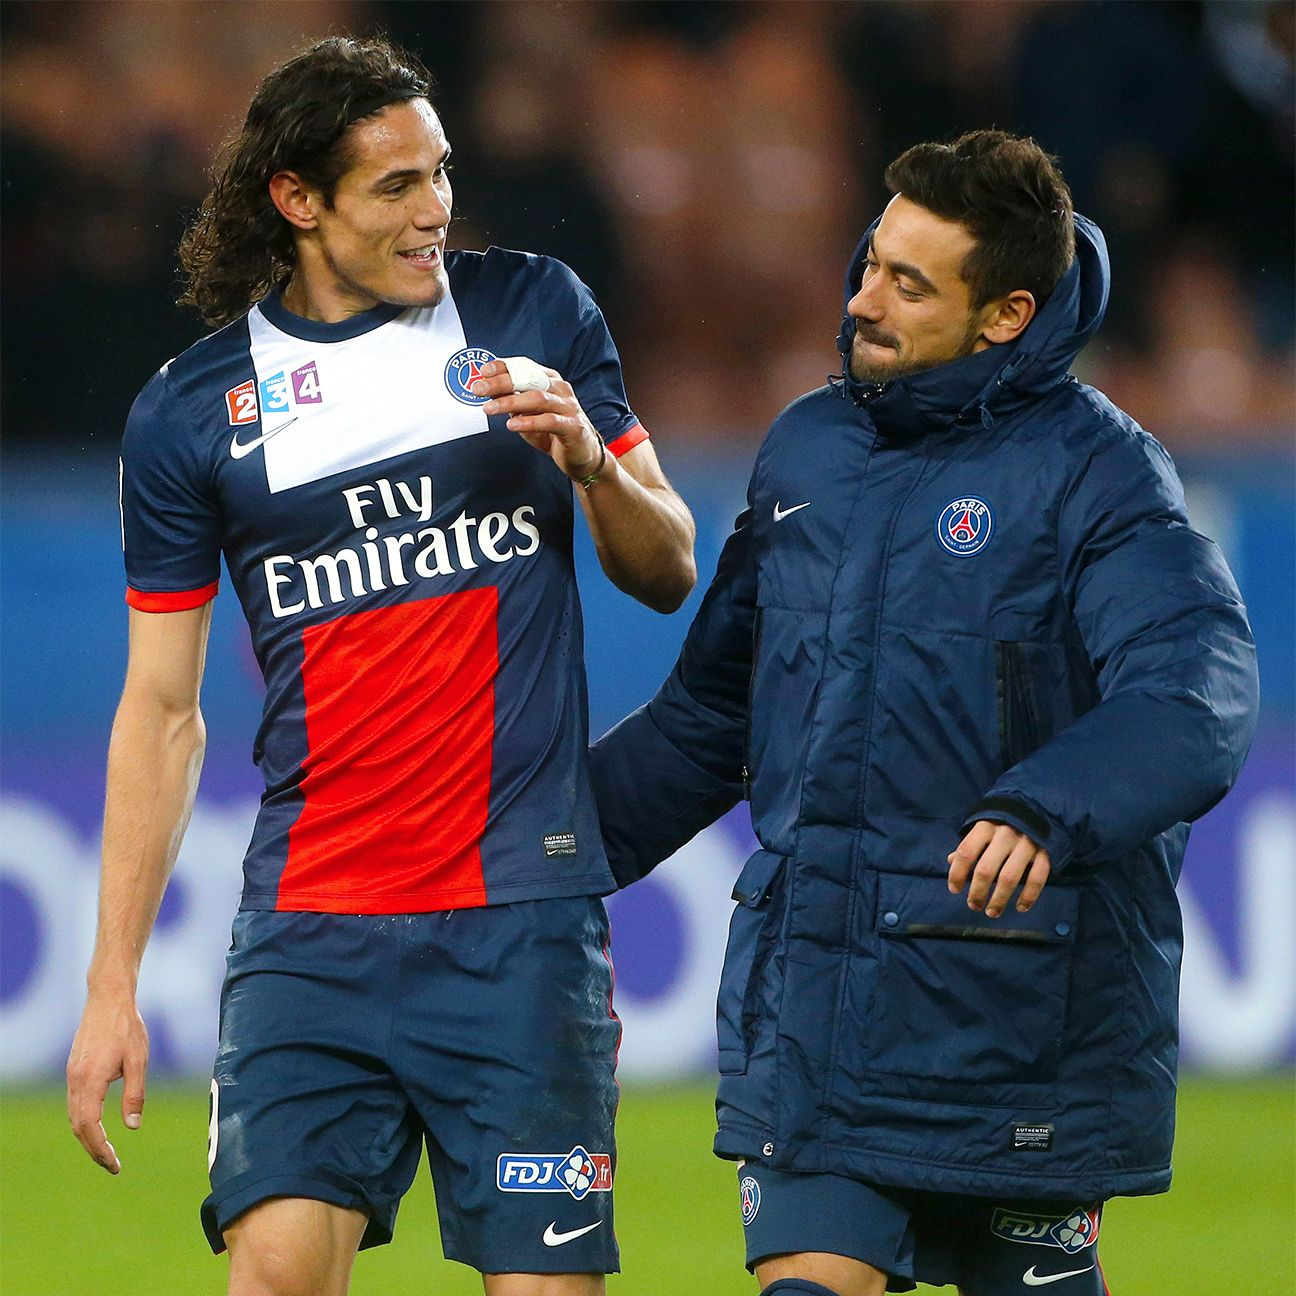 Neither Edinson Cavani, left, nor Ezequiel Lavezzi, right, have featured for PSG thus far in 2015.